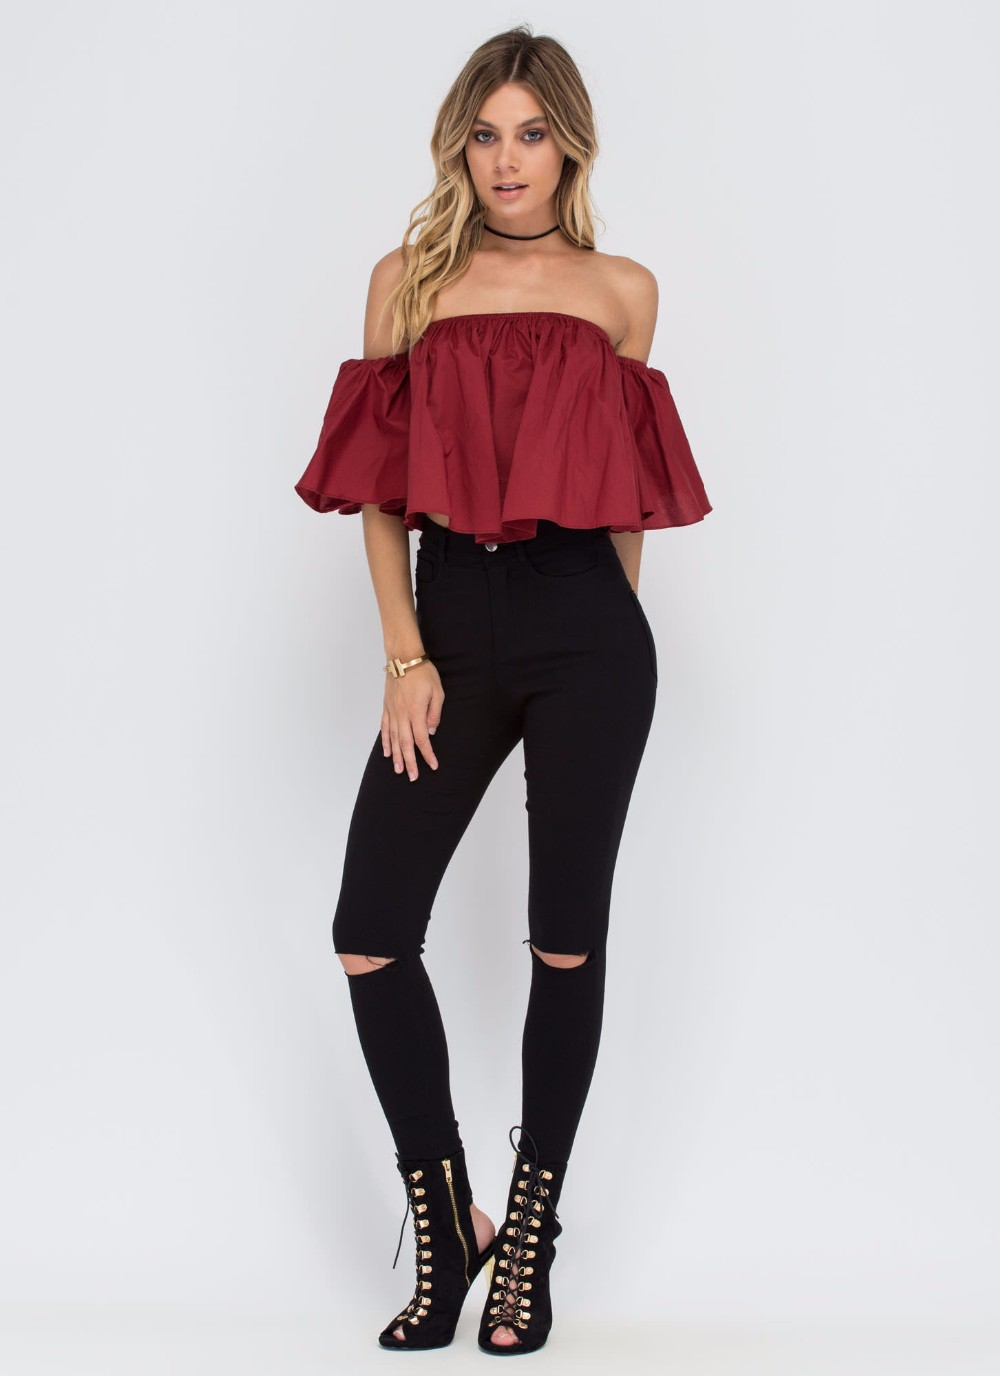 HTB1uvdNNFXXXXX0XVXXq6xXFXXXk - T shirt women butterfly sleeve off the shoulder crop top 2017